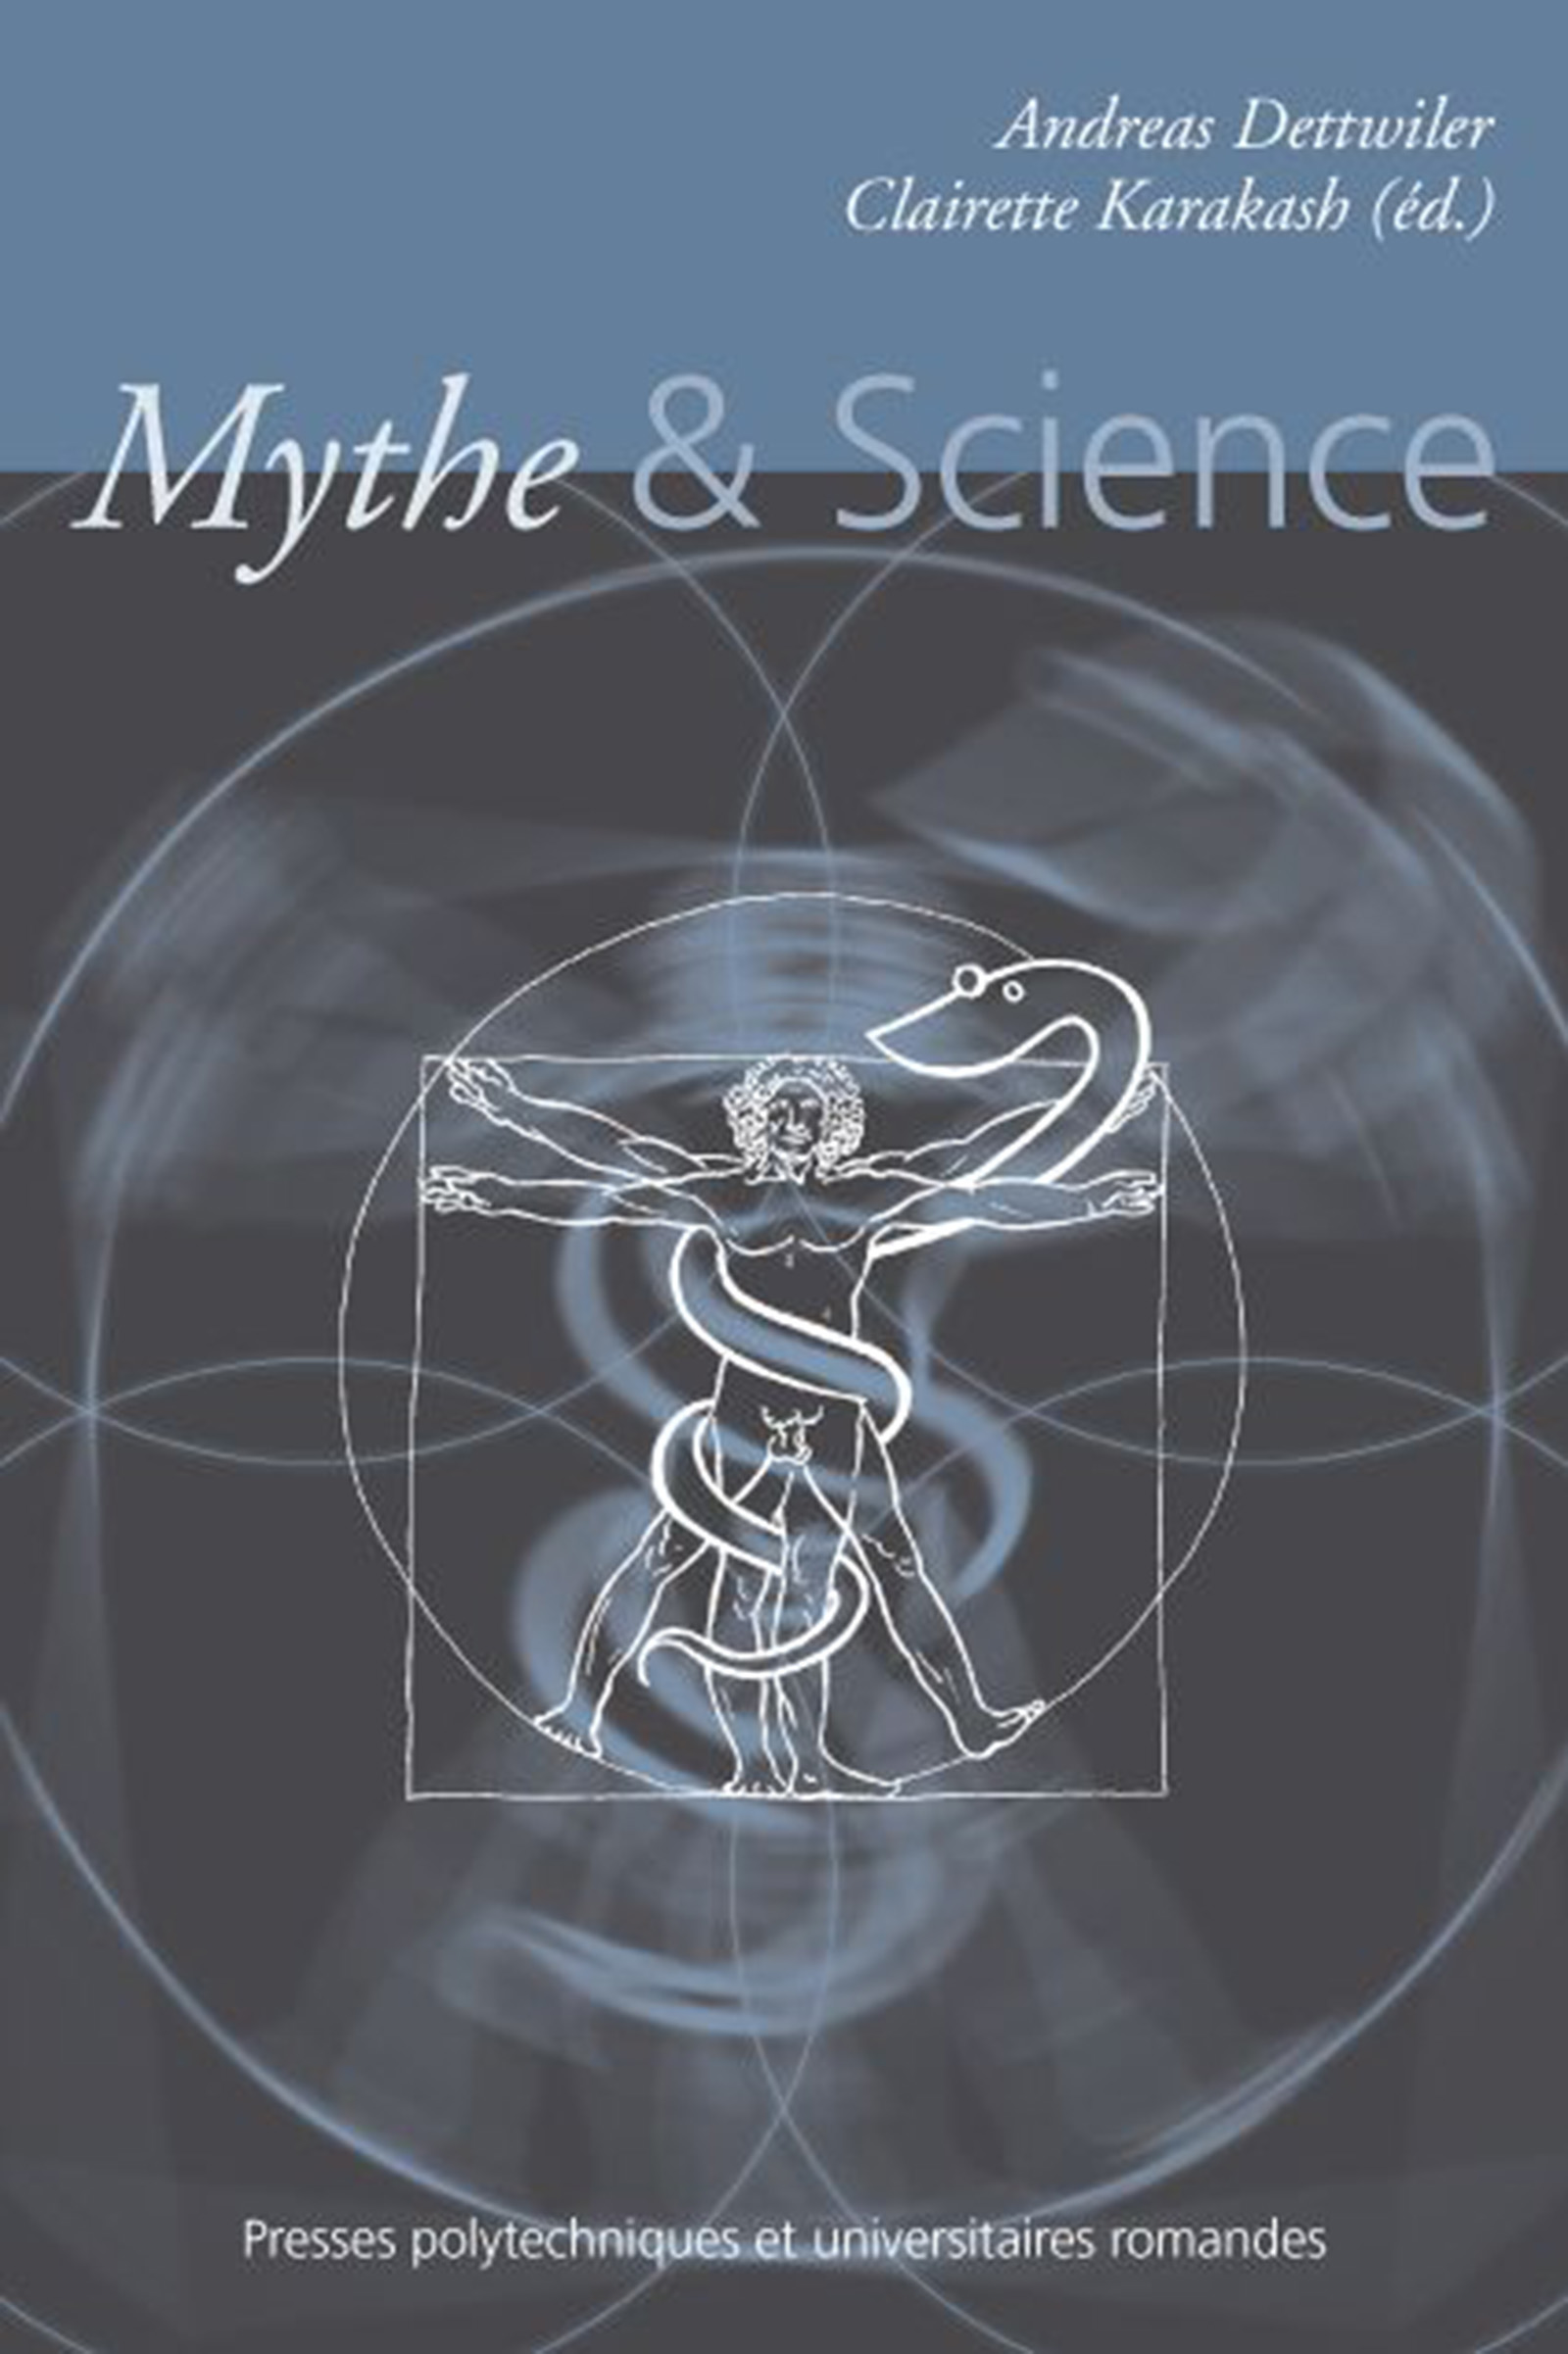 Mythe & Science